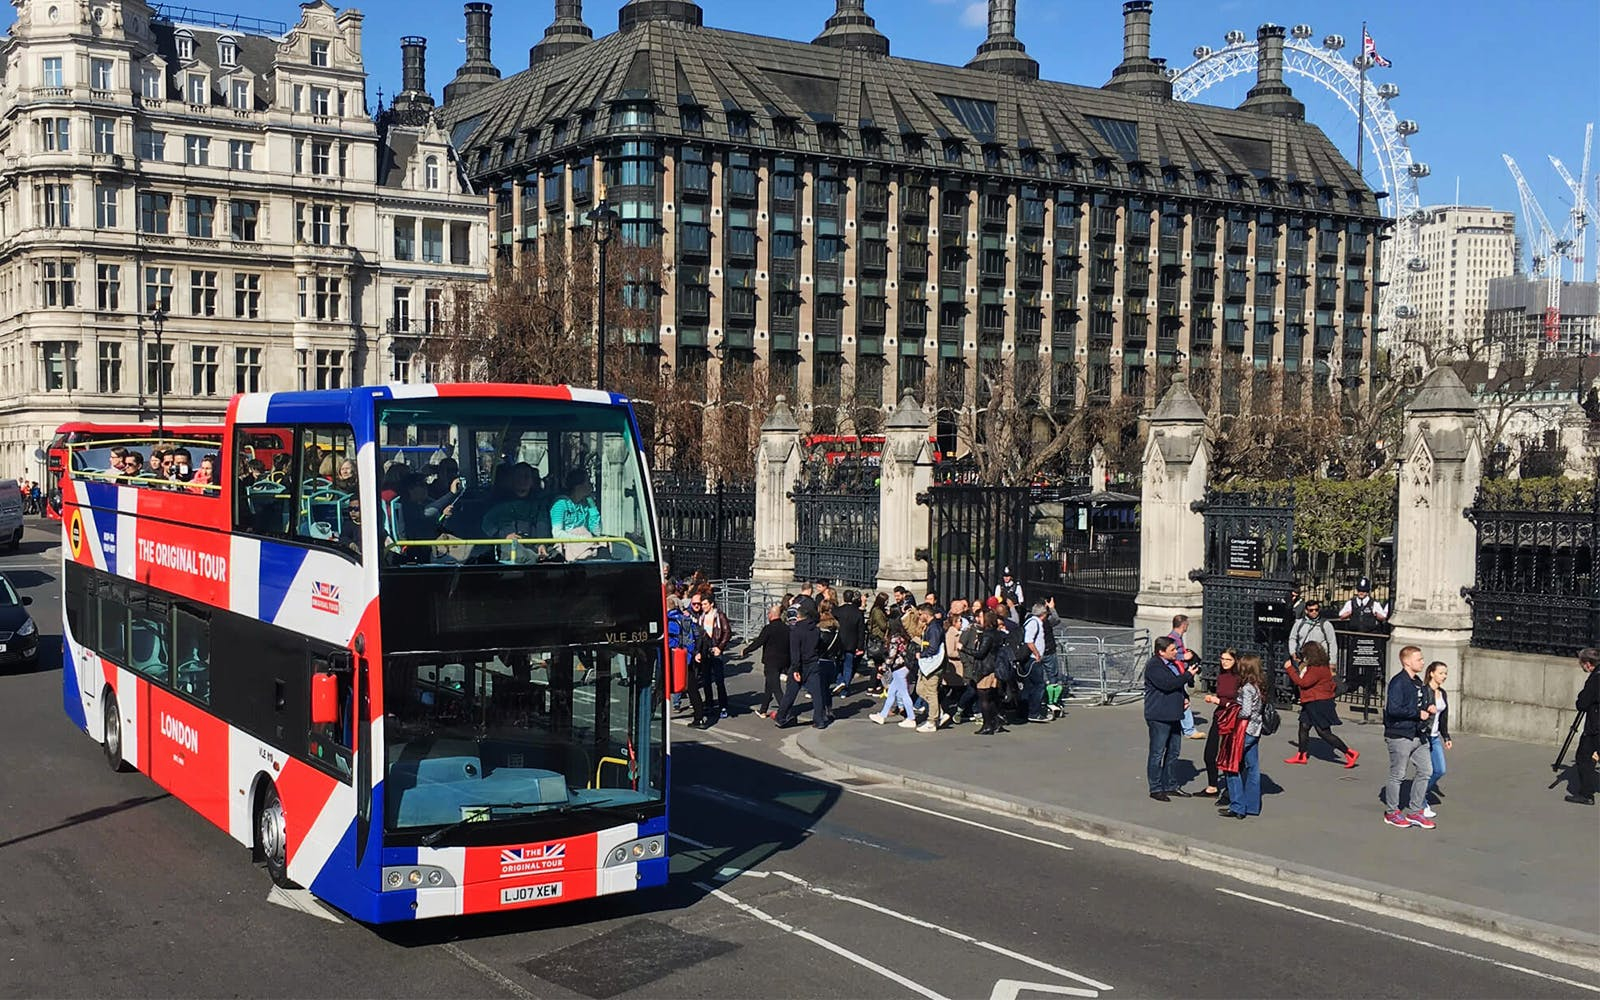 London Bus and Boat Hop-On Hop-Off Sightseeing Tour